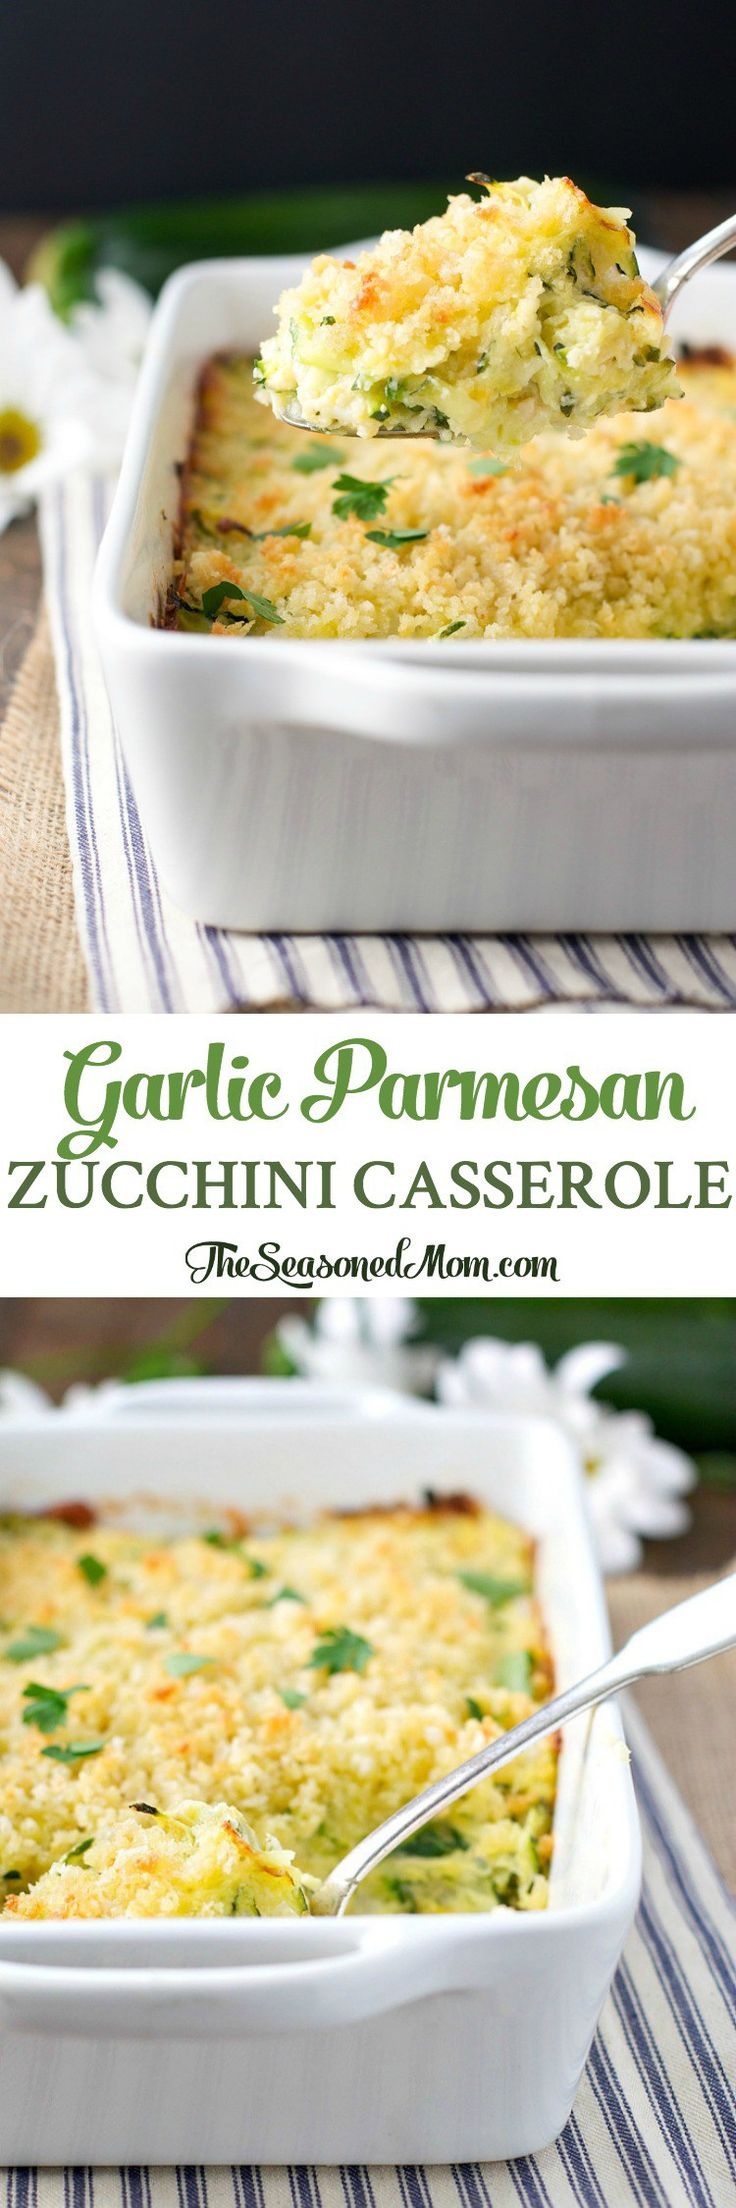 Garlic Parmesan Zucchini Casserole is an easy side dish recipe that comes together in just minutes! It's the best way to get kids to eat their veggies!